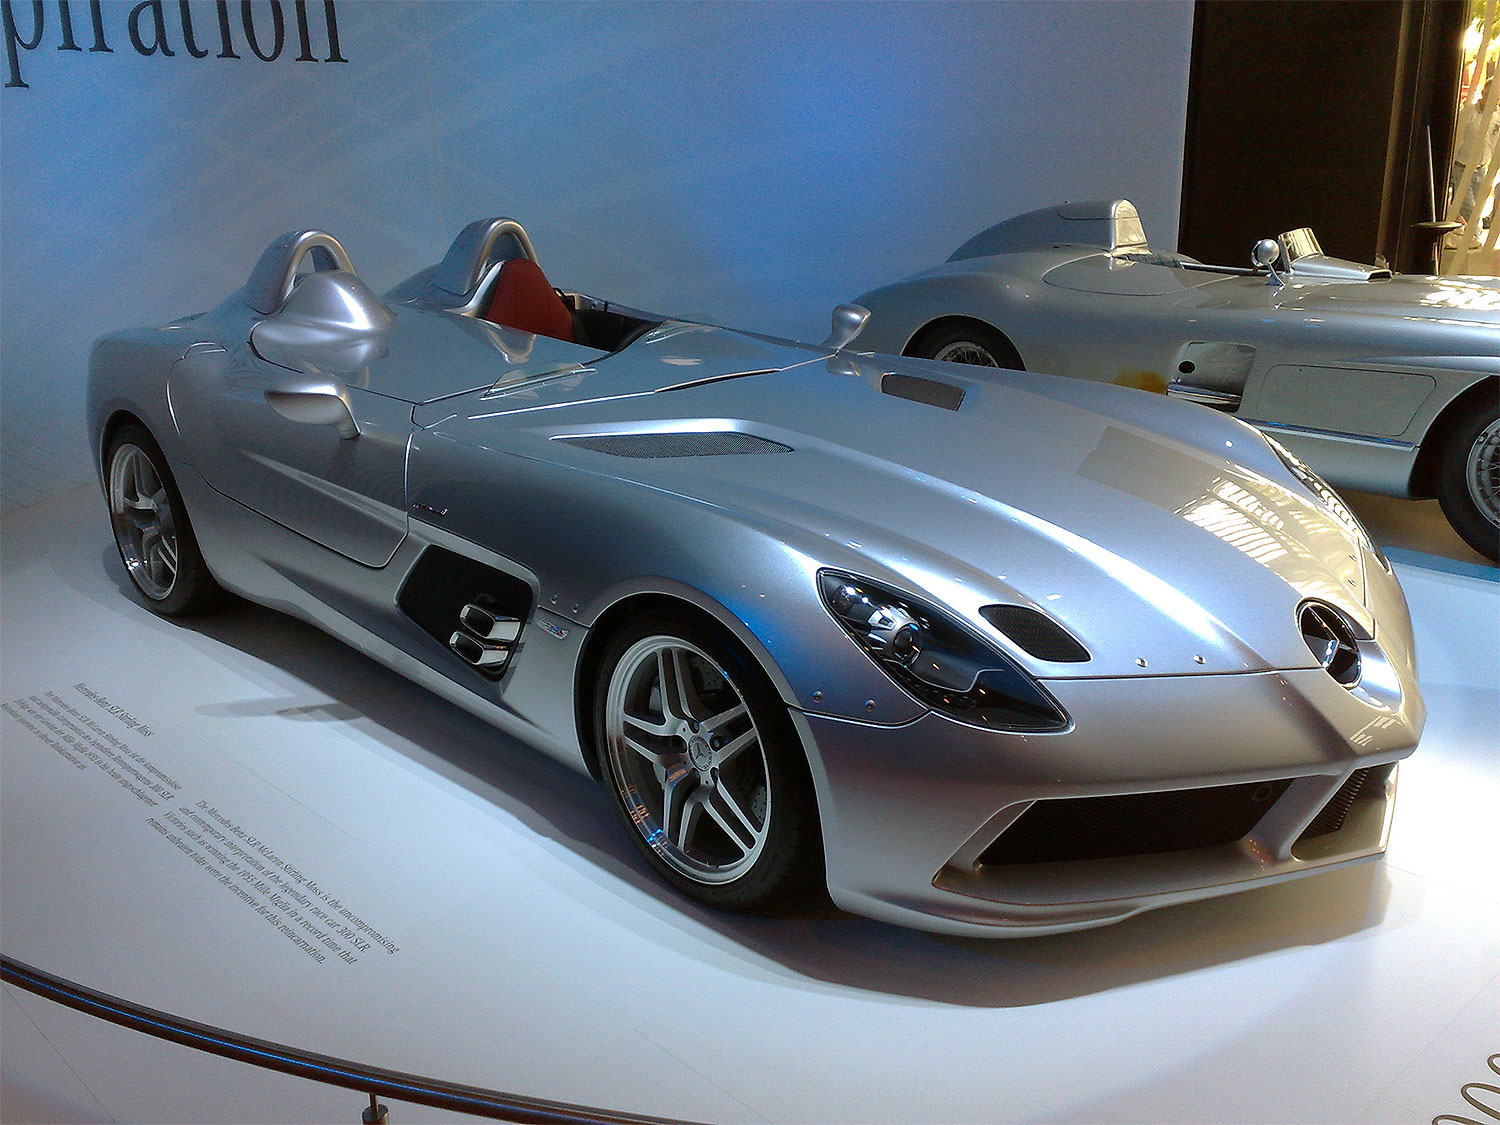 mercedes benz slr stirling moss edition. Black Bedroom Furniture Sets. Home Design Ideas